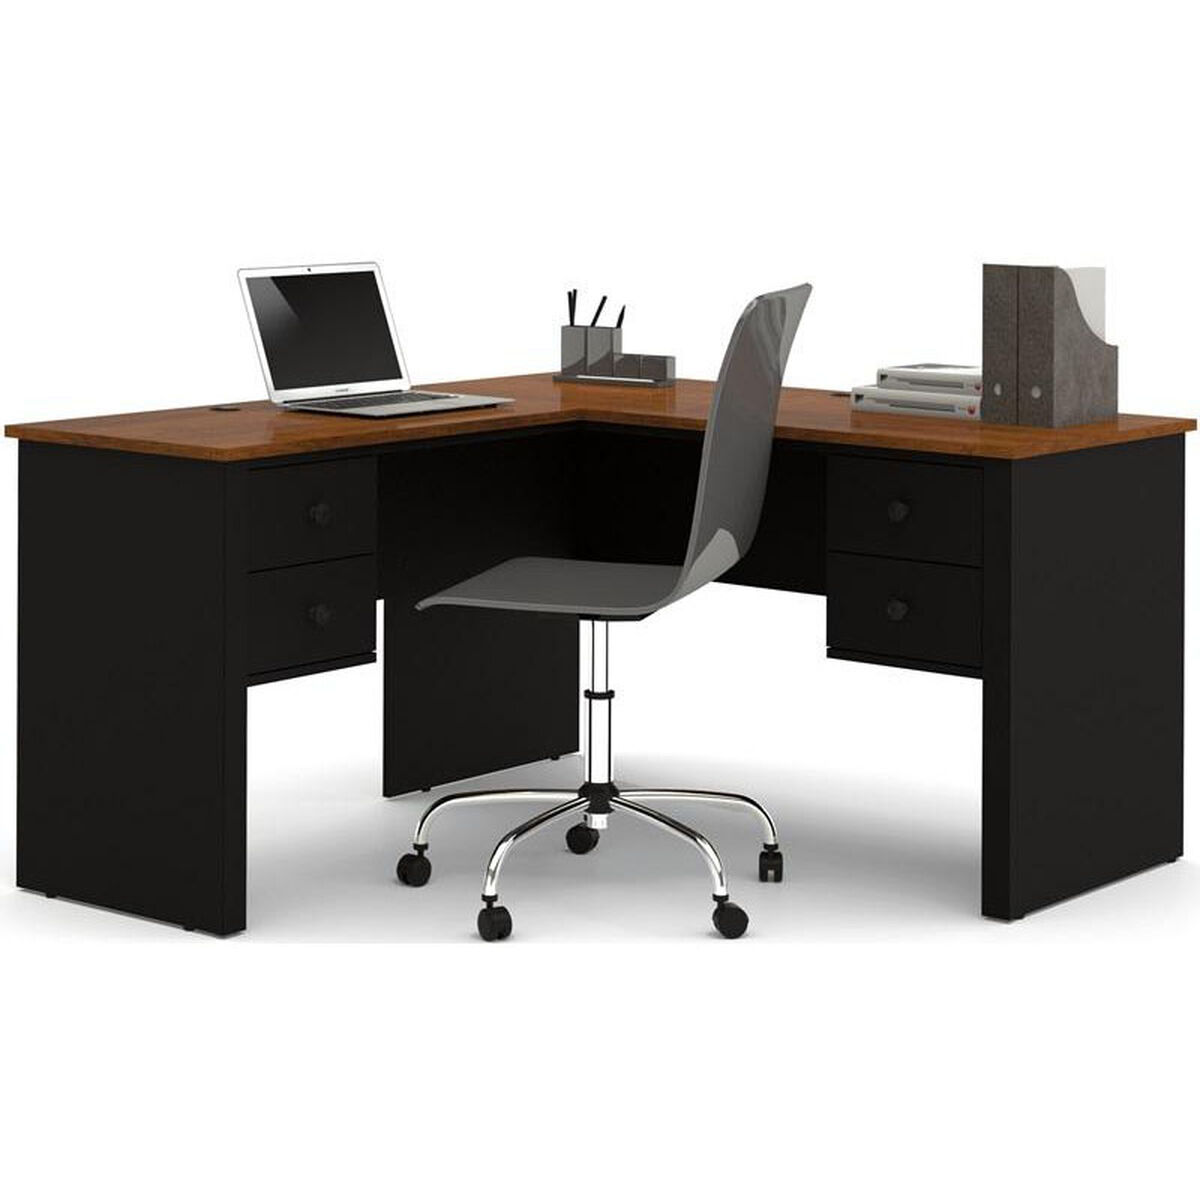 Our Somerville L Shaped Desk With File Drawer And Wire Management Black Tuscany